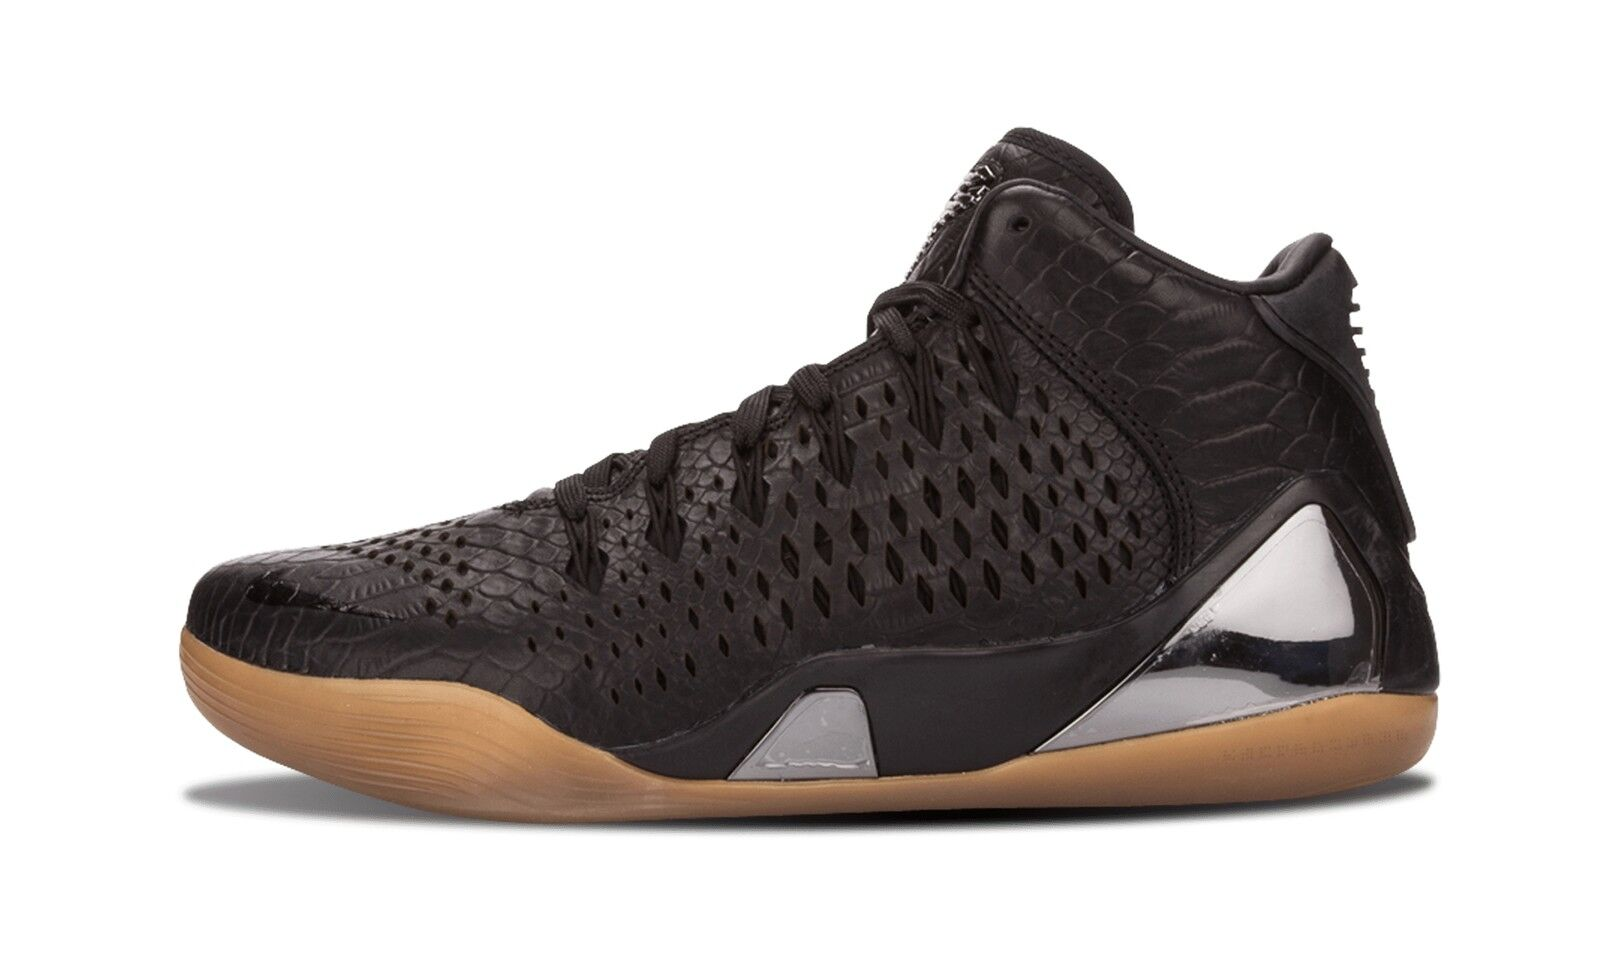 the latest be2a7 d185a Nike Kobe 9 Mid Mid Mid ext QS piel de serpiente 704286 001 barato y hermoso